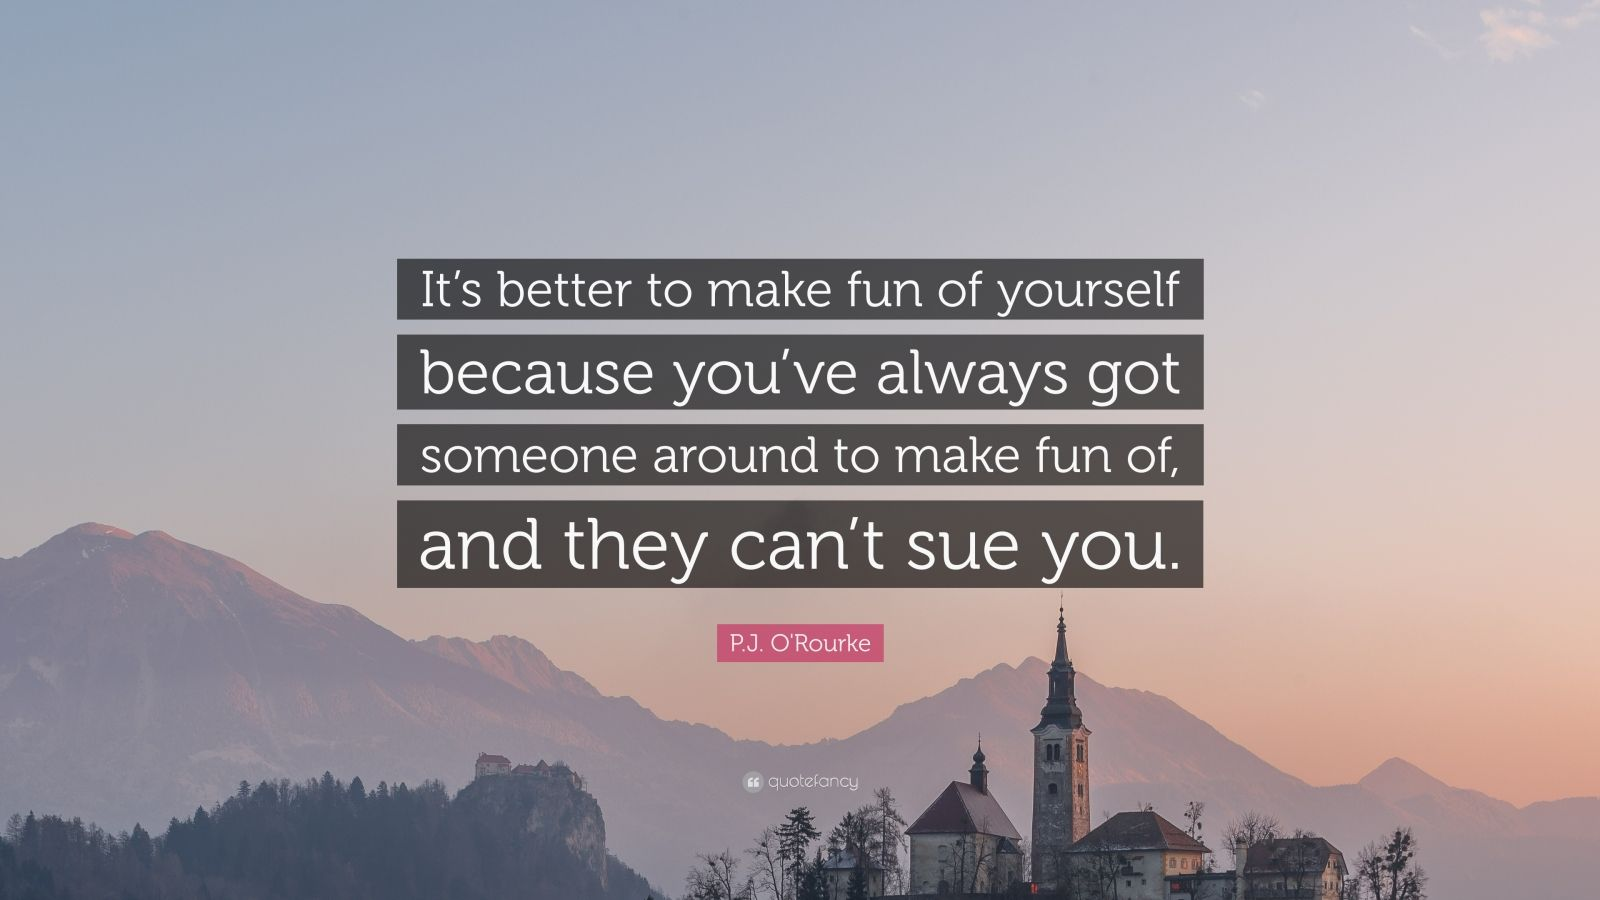 """P.J. O'Rourke Quote: """"It's better to make fun of yourself because you've always got someone around to make fun of, and they can't sue you."""""""